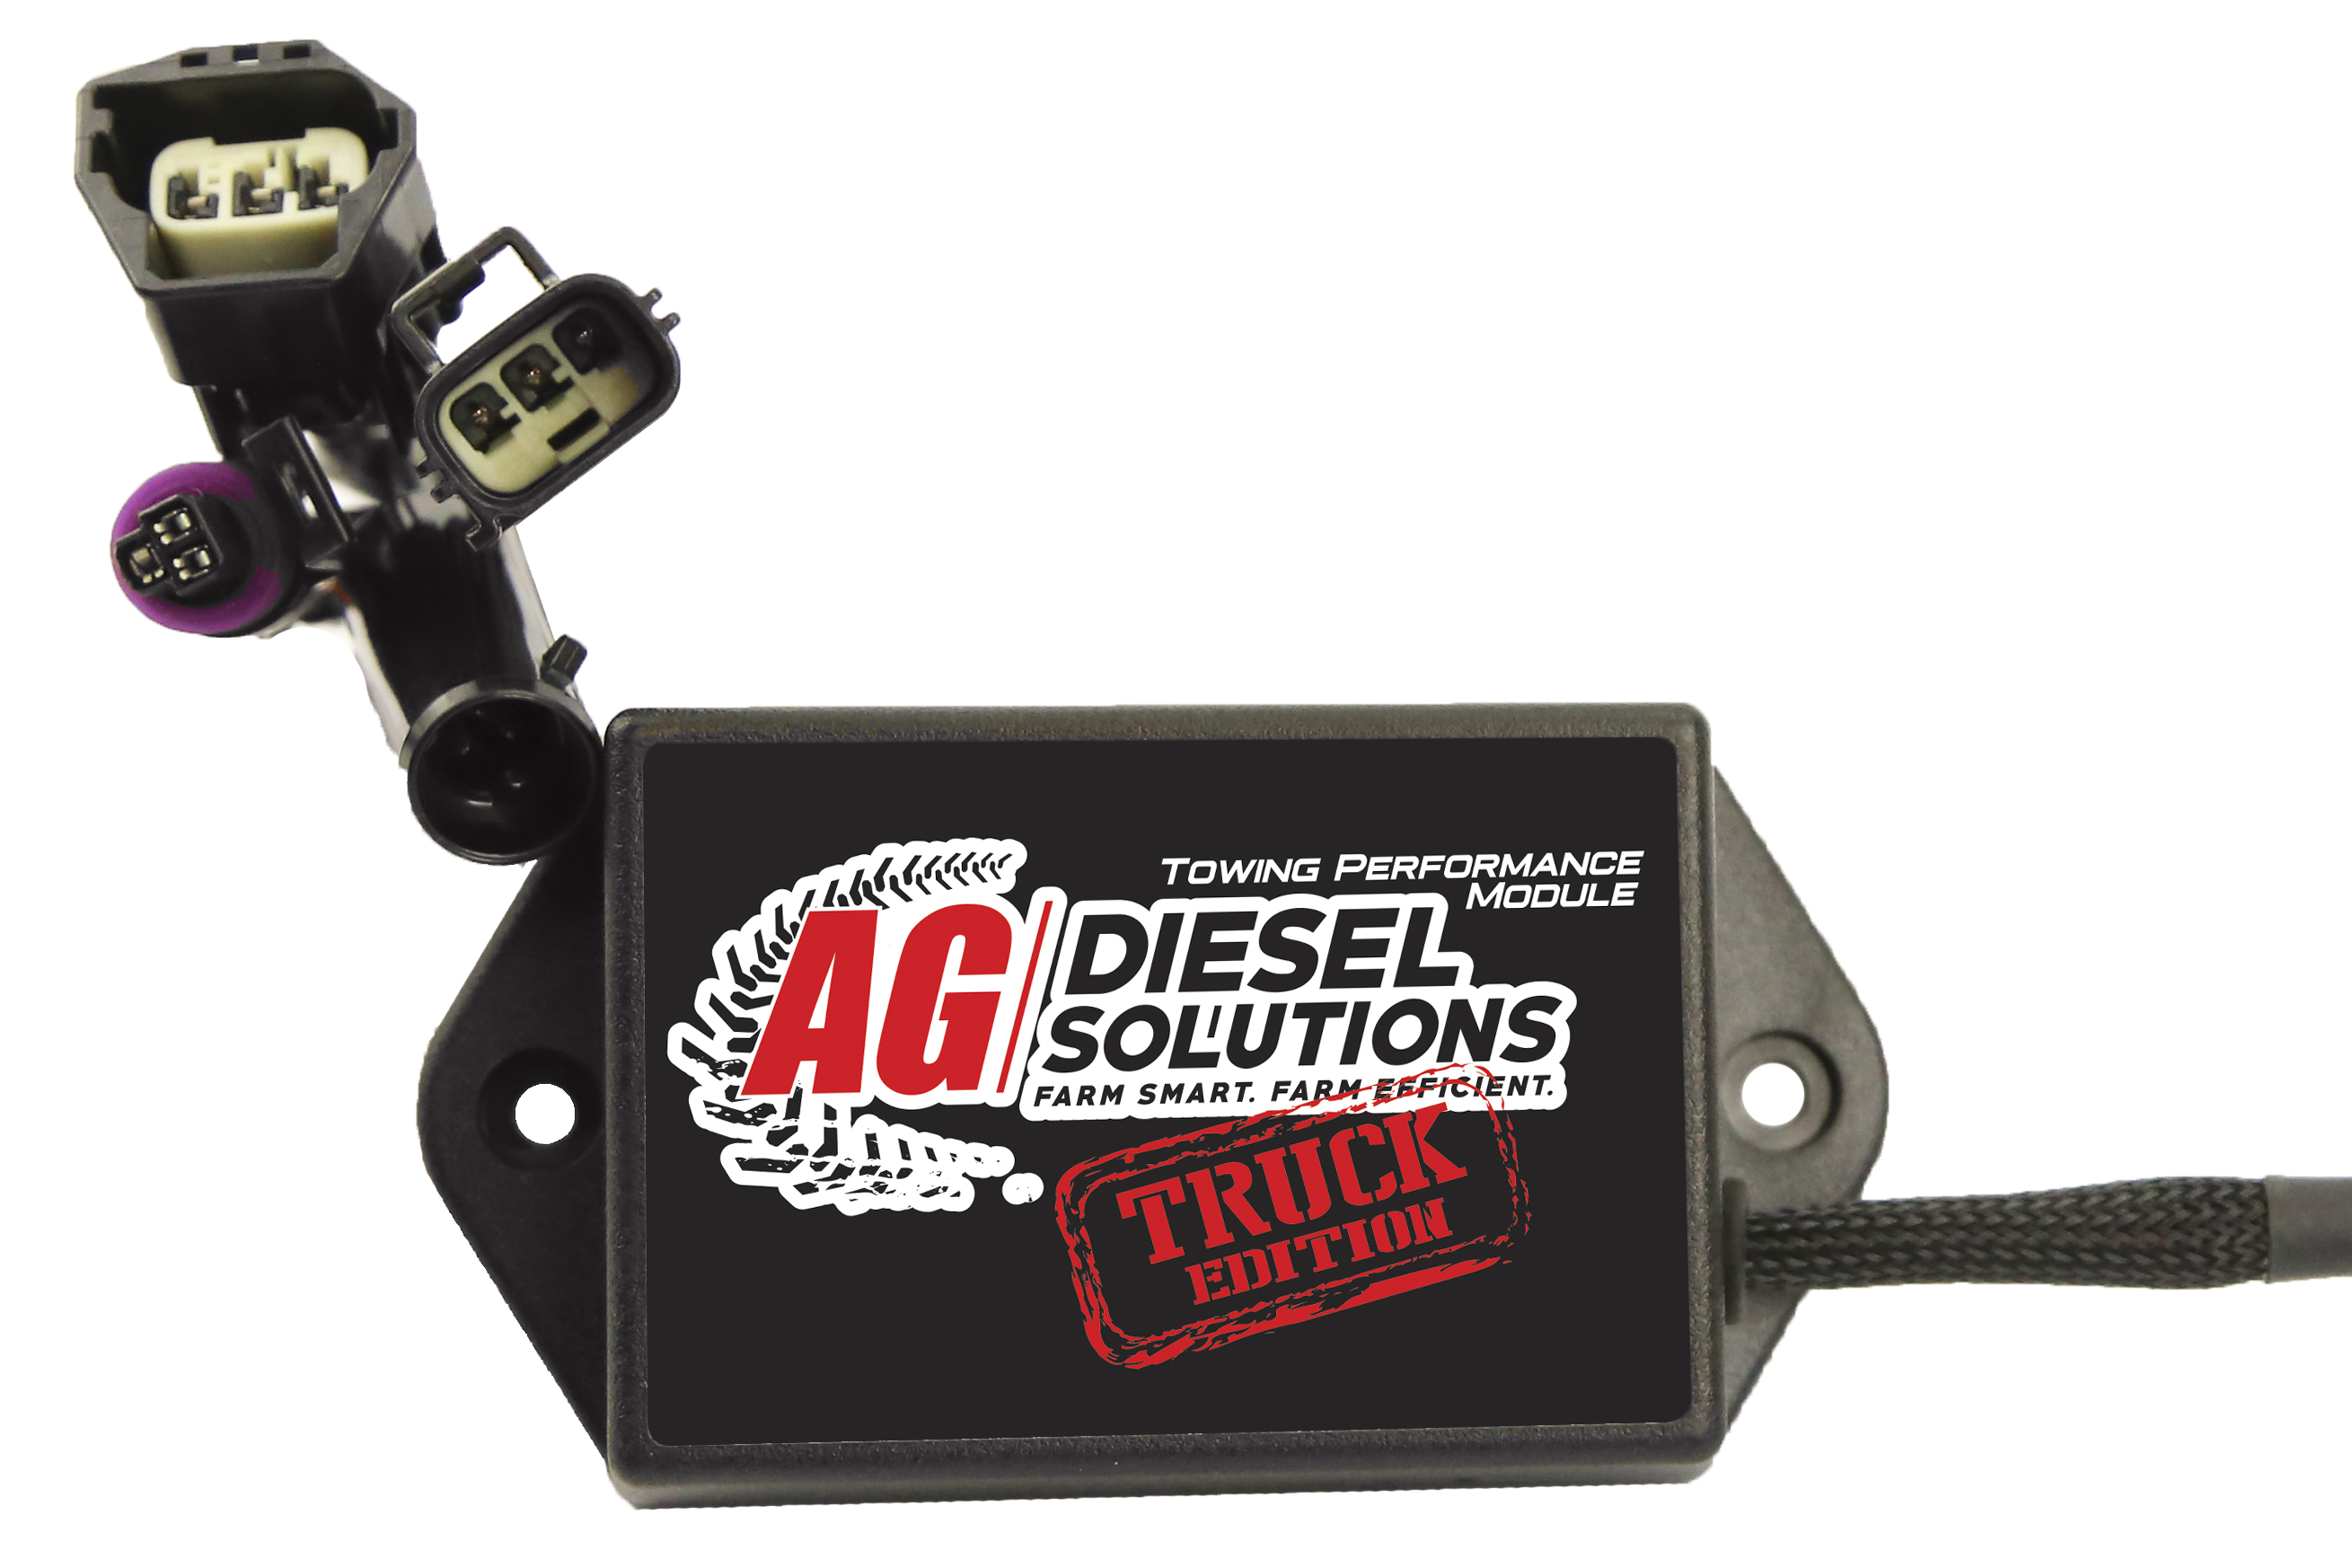 22000_Ag Diesel Solutions Electronic Performance Module for 04 - 07 6.0L Powerstroke Engines